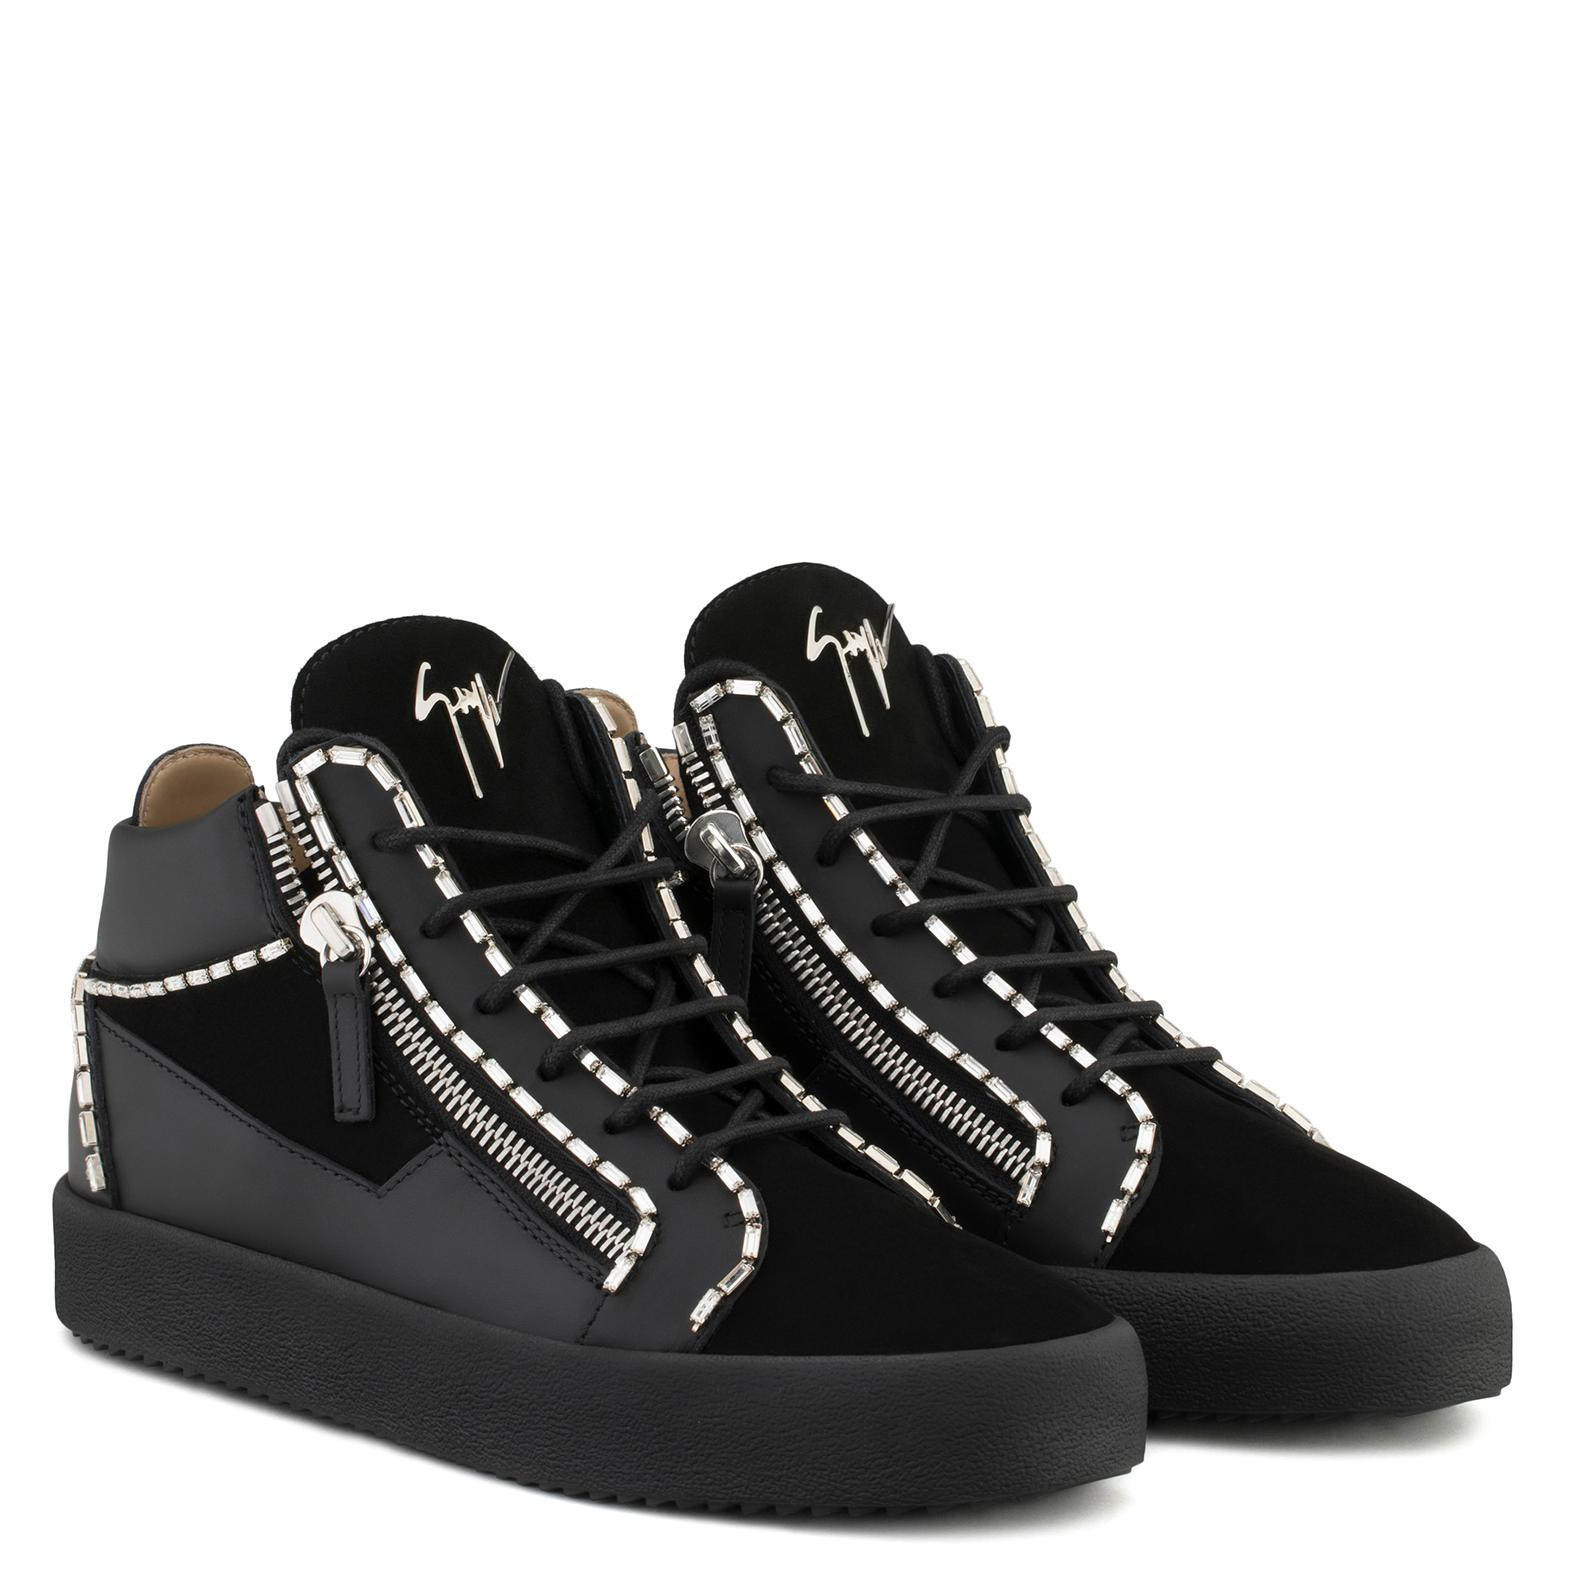 Giuseppe Zanotti Calf leather and suede mid-top sneaker with crystals CRAIG UuzOa